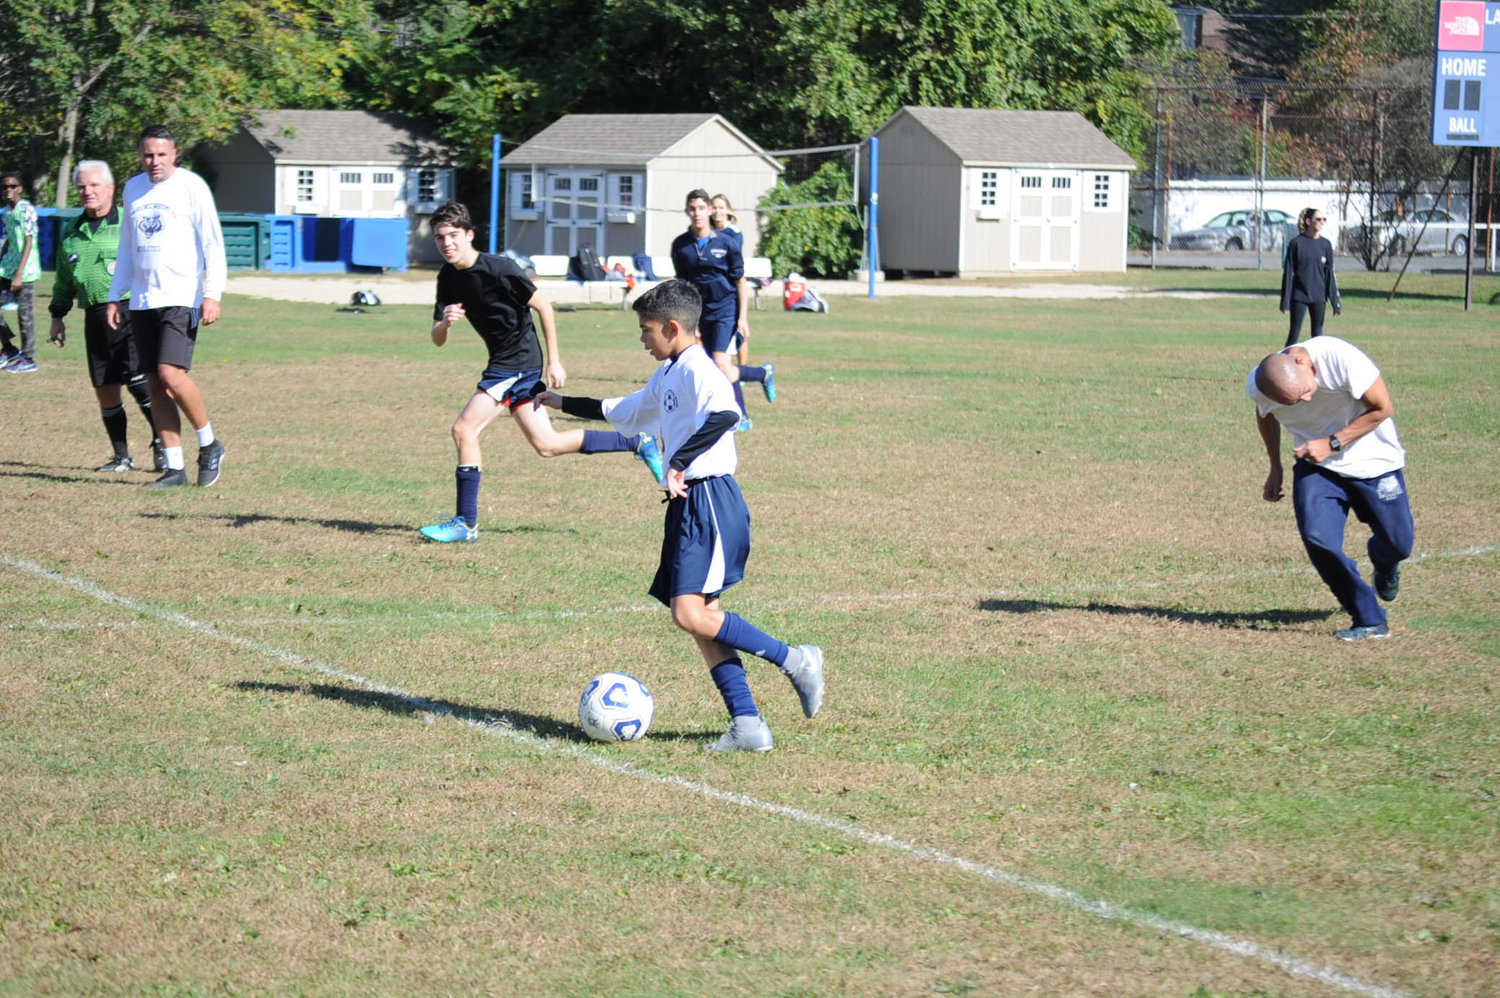 Eighth-grader Daniel Gonzales handled the ball in the teachers vs. students game.